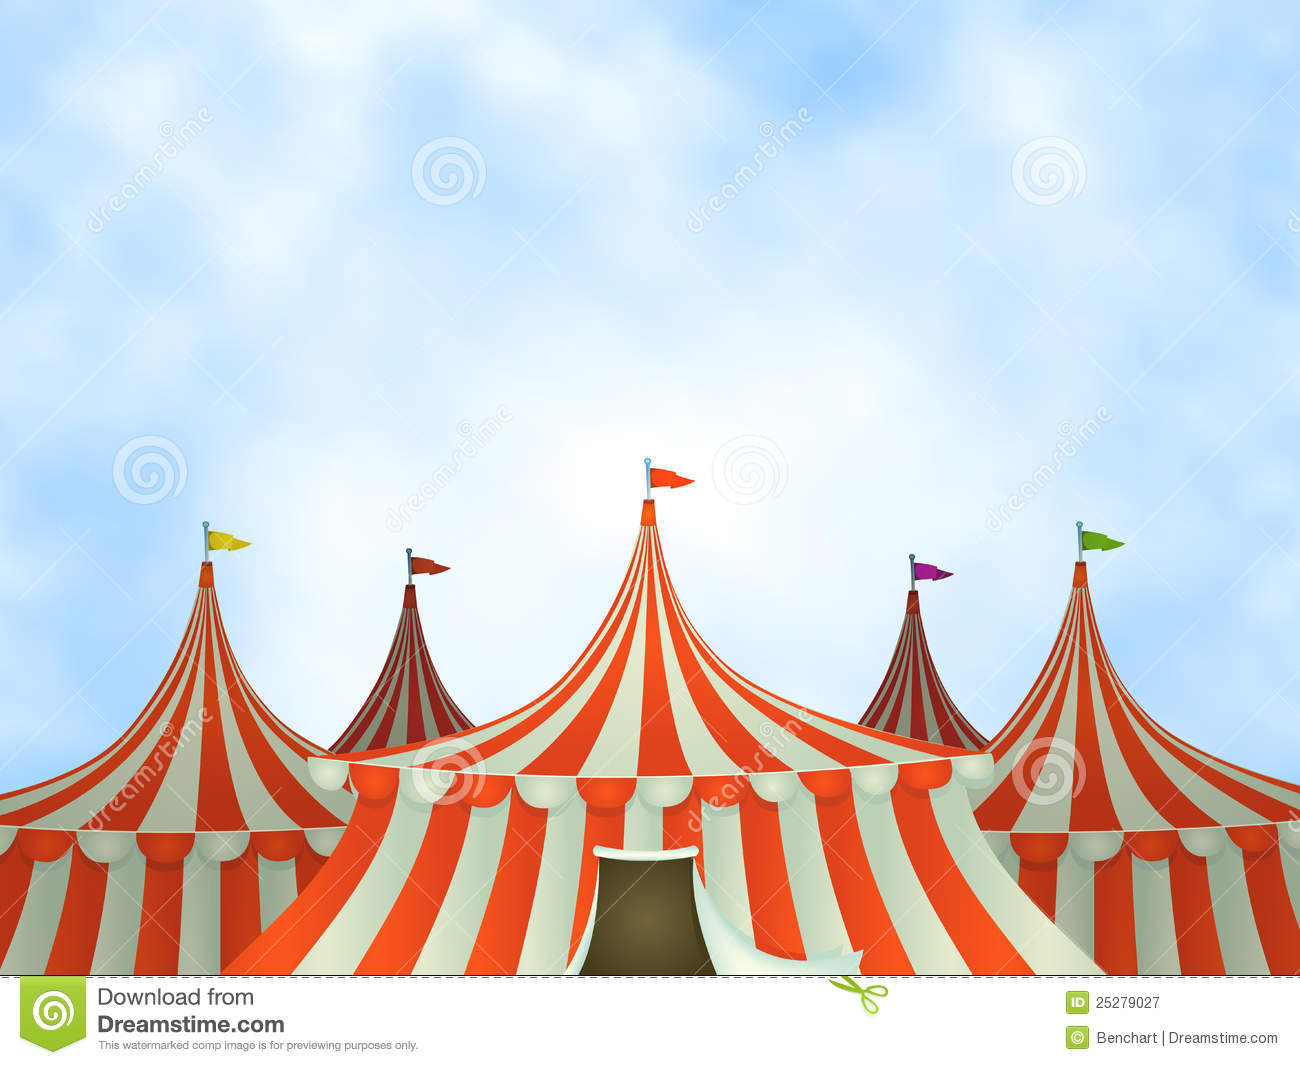 Circus Tents Background  sc 1 st  Dreamstime.com & Circus Tents Background stock vector. Illustration of tarpaulin ...